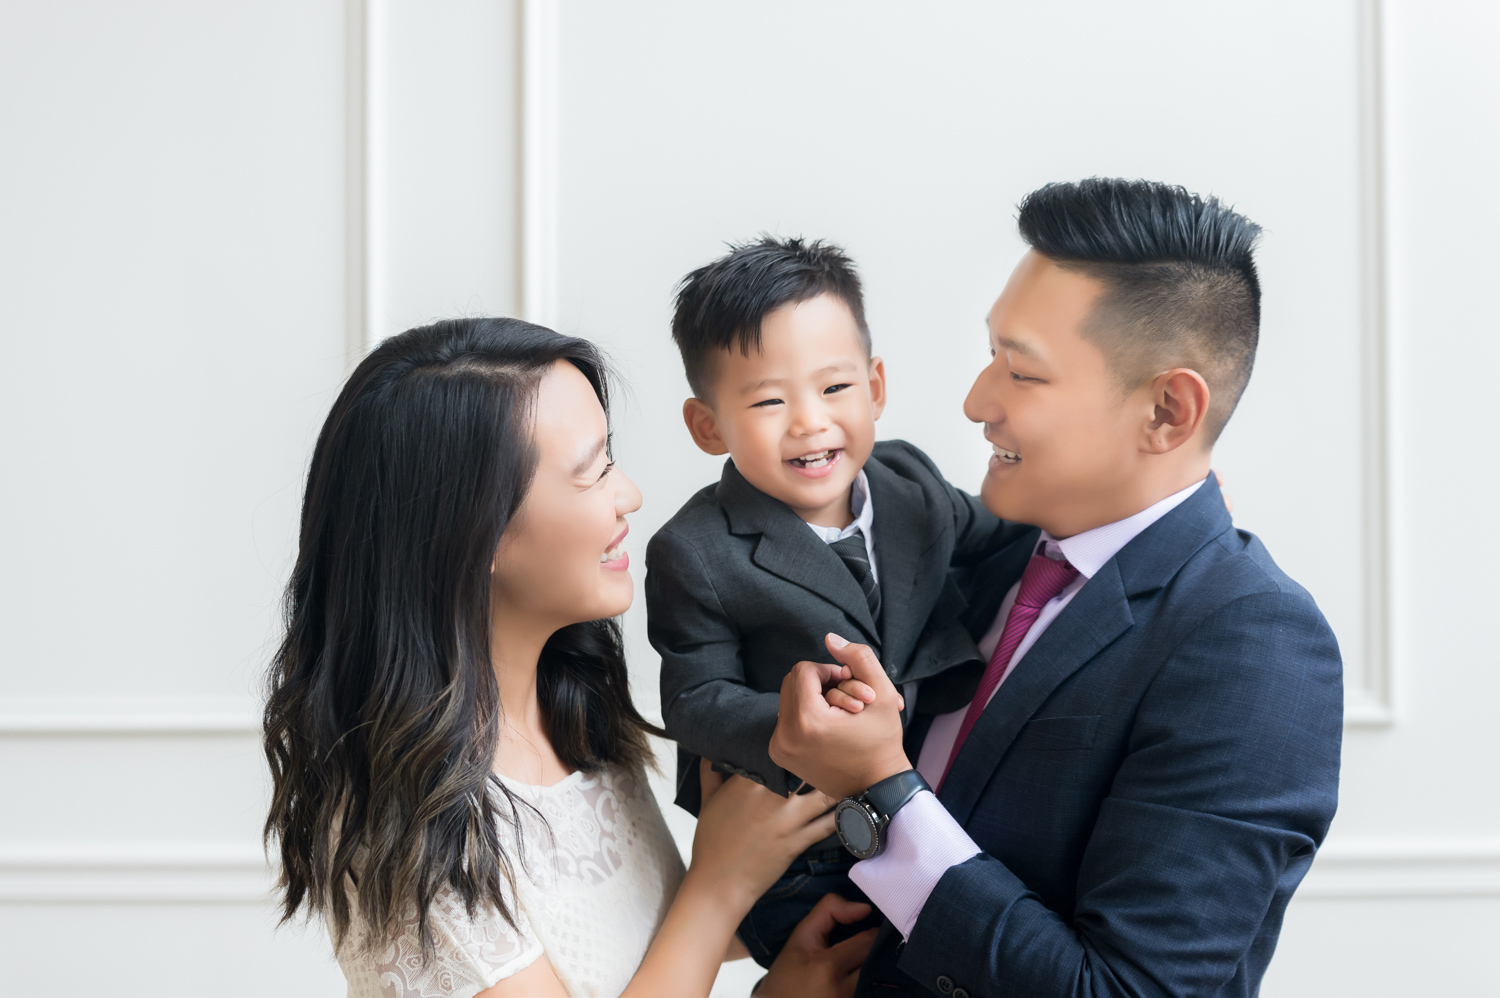 Parents smile at son during a family photo session in Chicago.